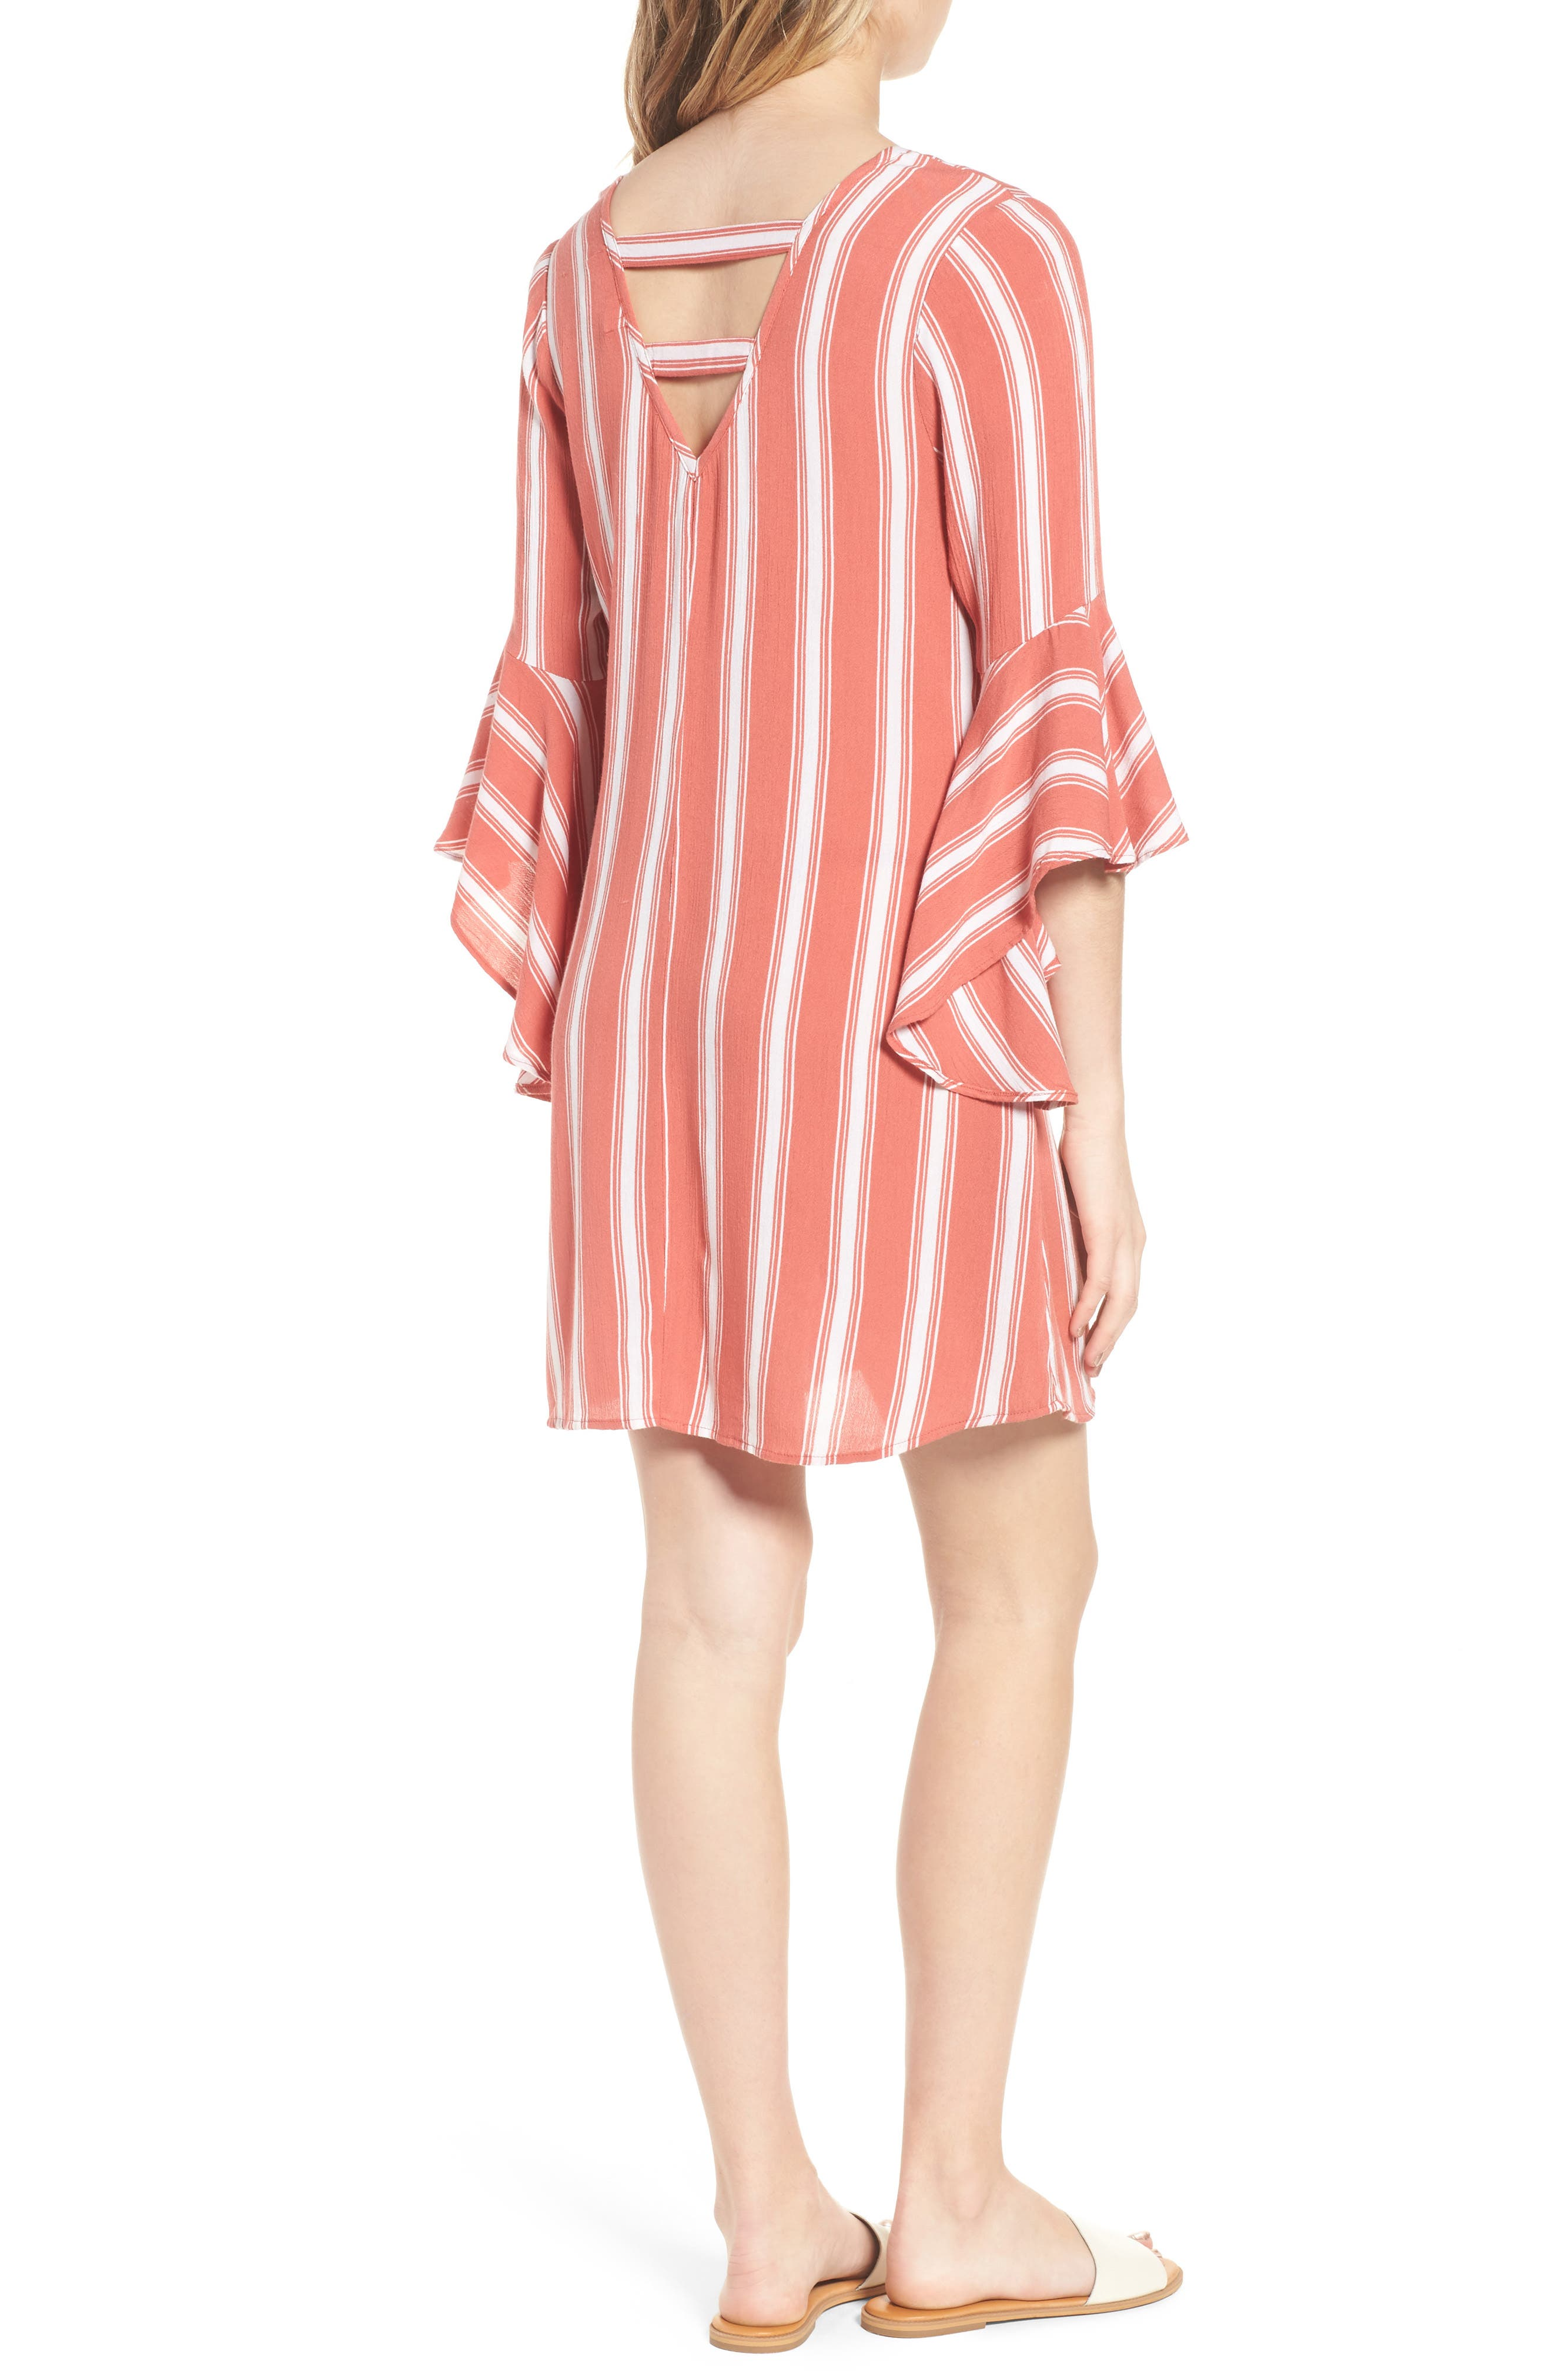 Ruffle Bell Sleeve Dress,                             Alternate thumbnail 2, color,                             Dusty Coral/ Ivory